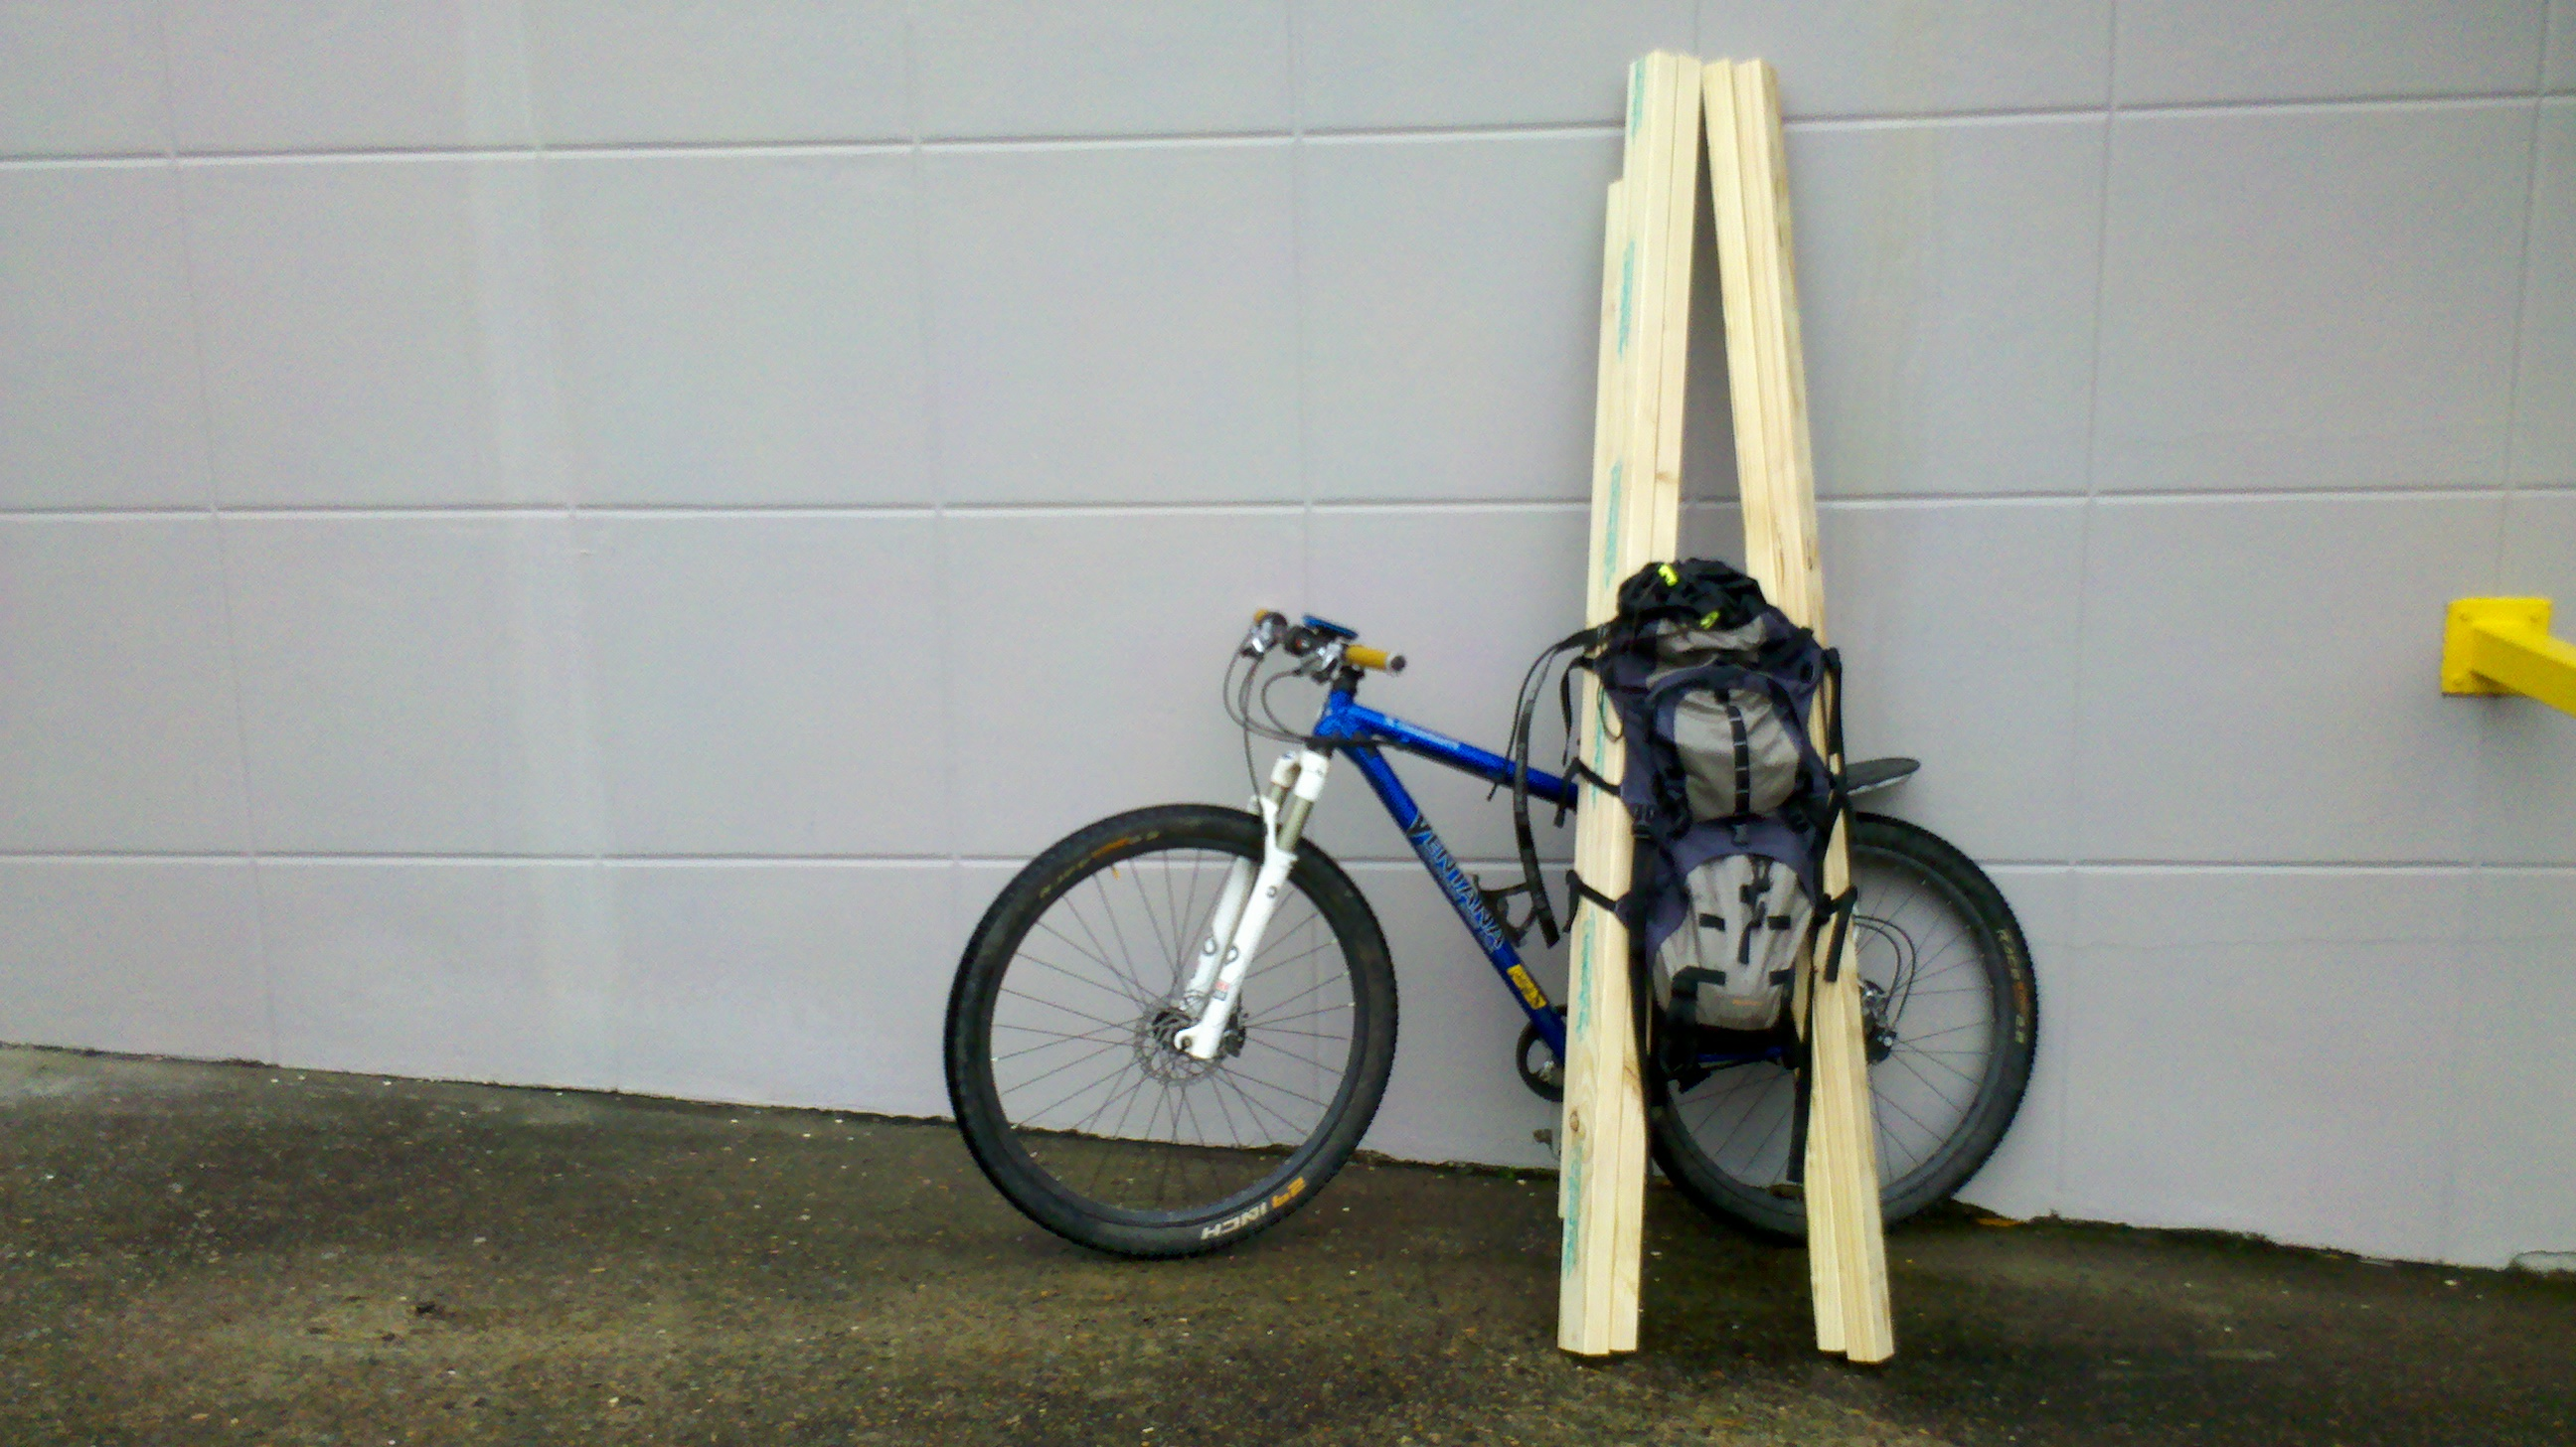 Ollie bike loaded with lumber